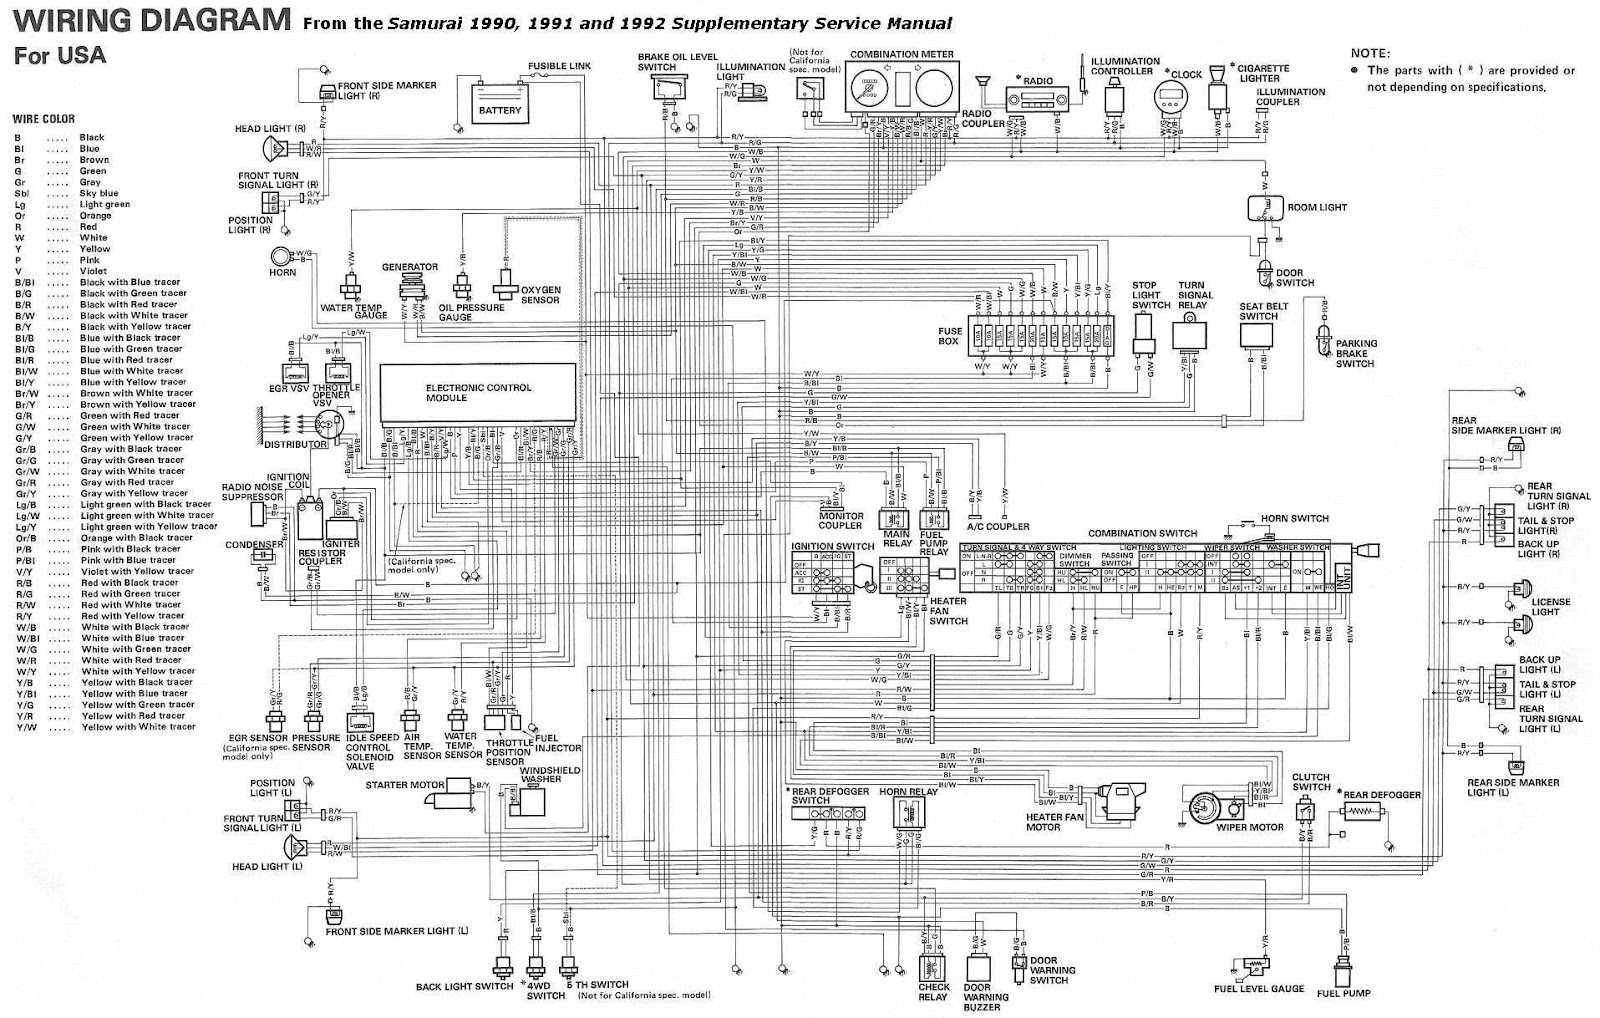 Oliver 1750 Wiring Diagram Electrical Diagrams 1600 Ford 6610 Trusted Special